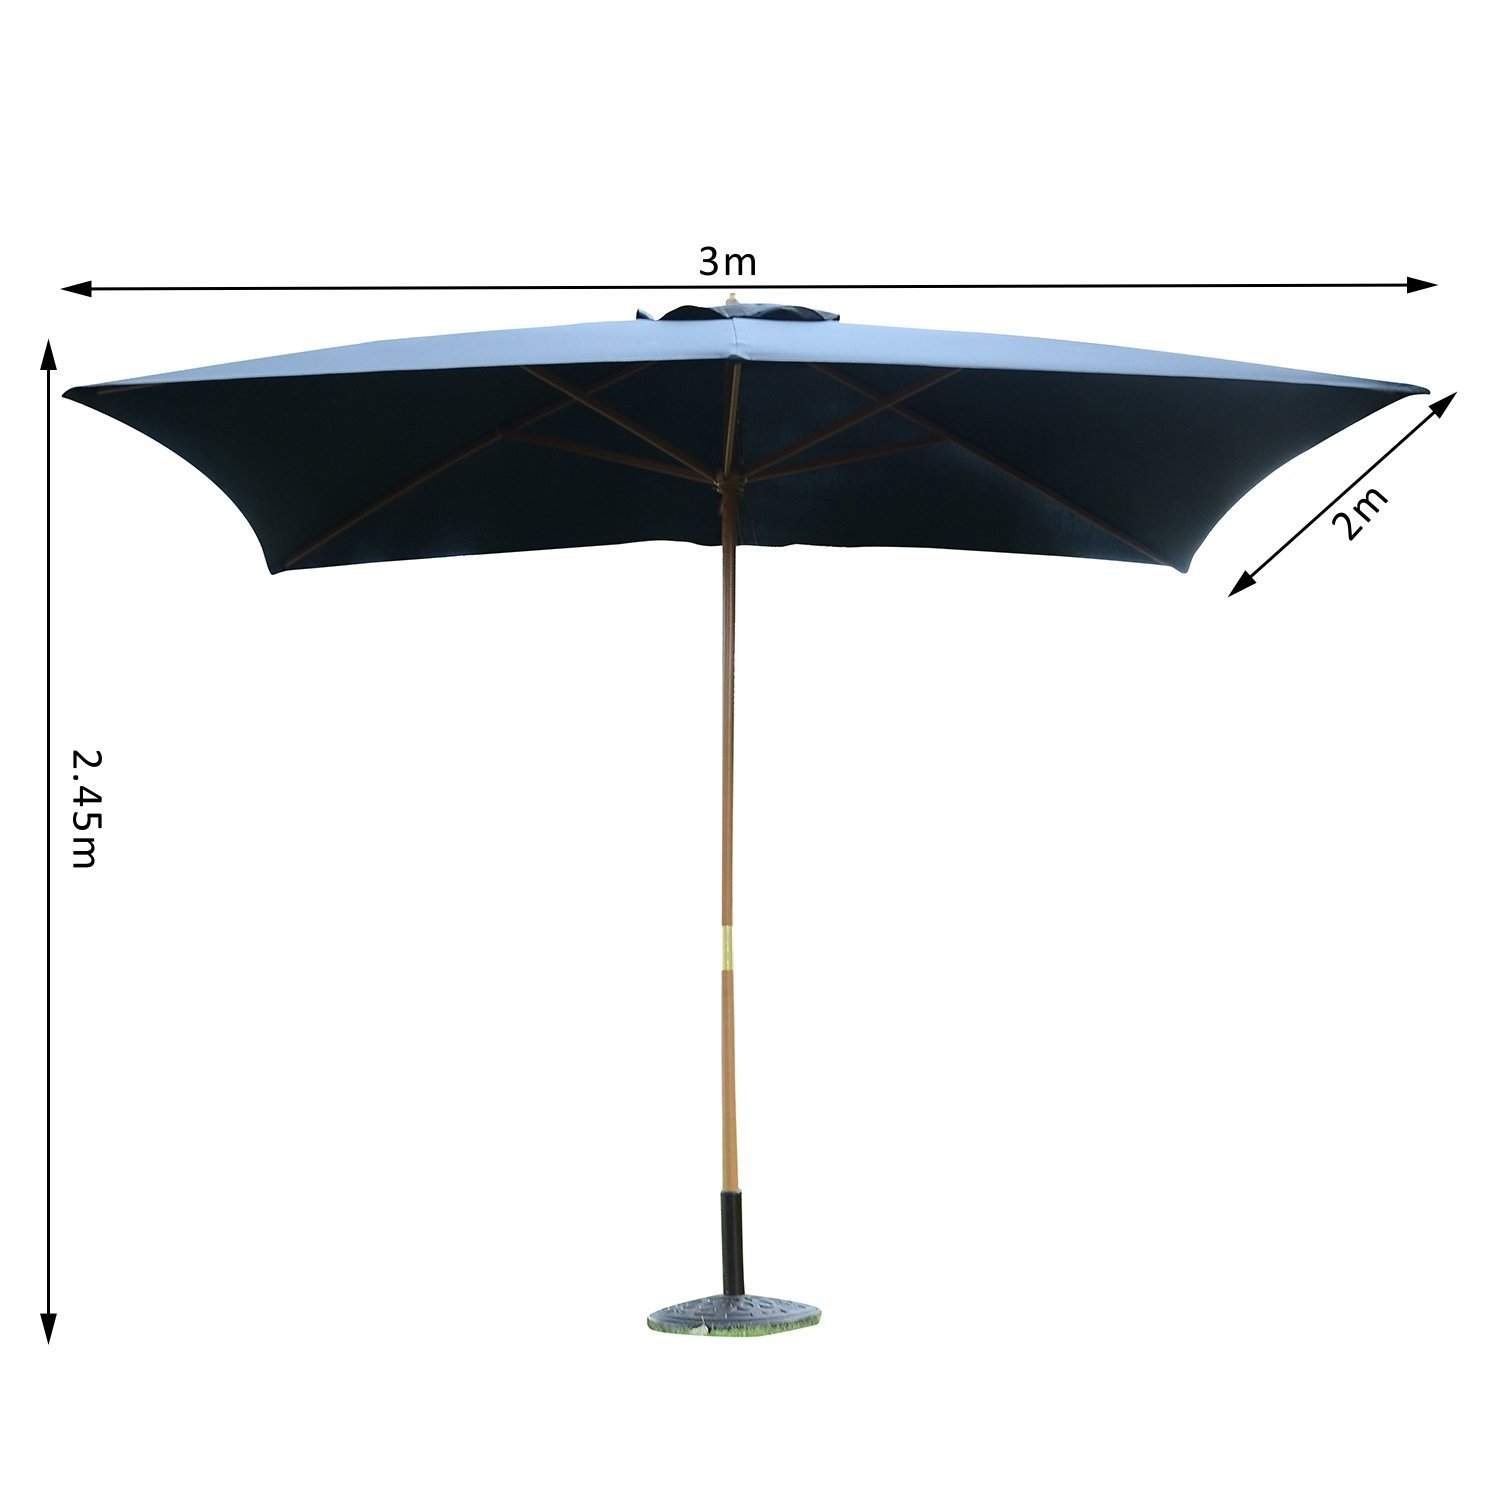 Teppiche 2m X 3m 3m X 2m Wood Wooden Garden Parasol Sun Shade Patio Outdoor